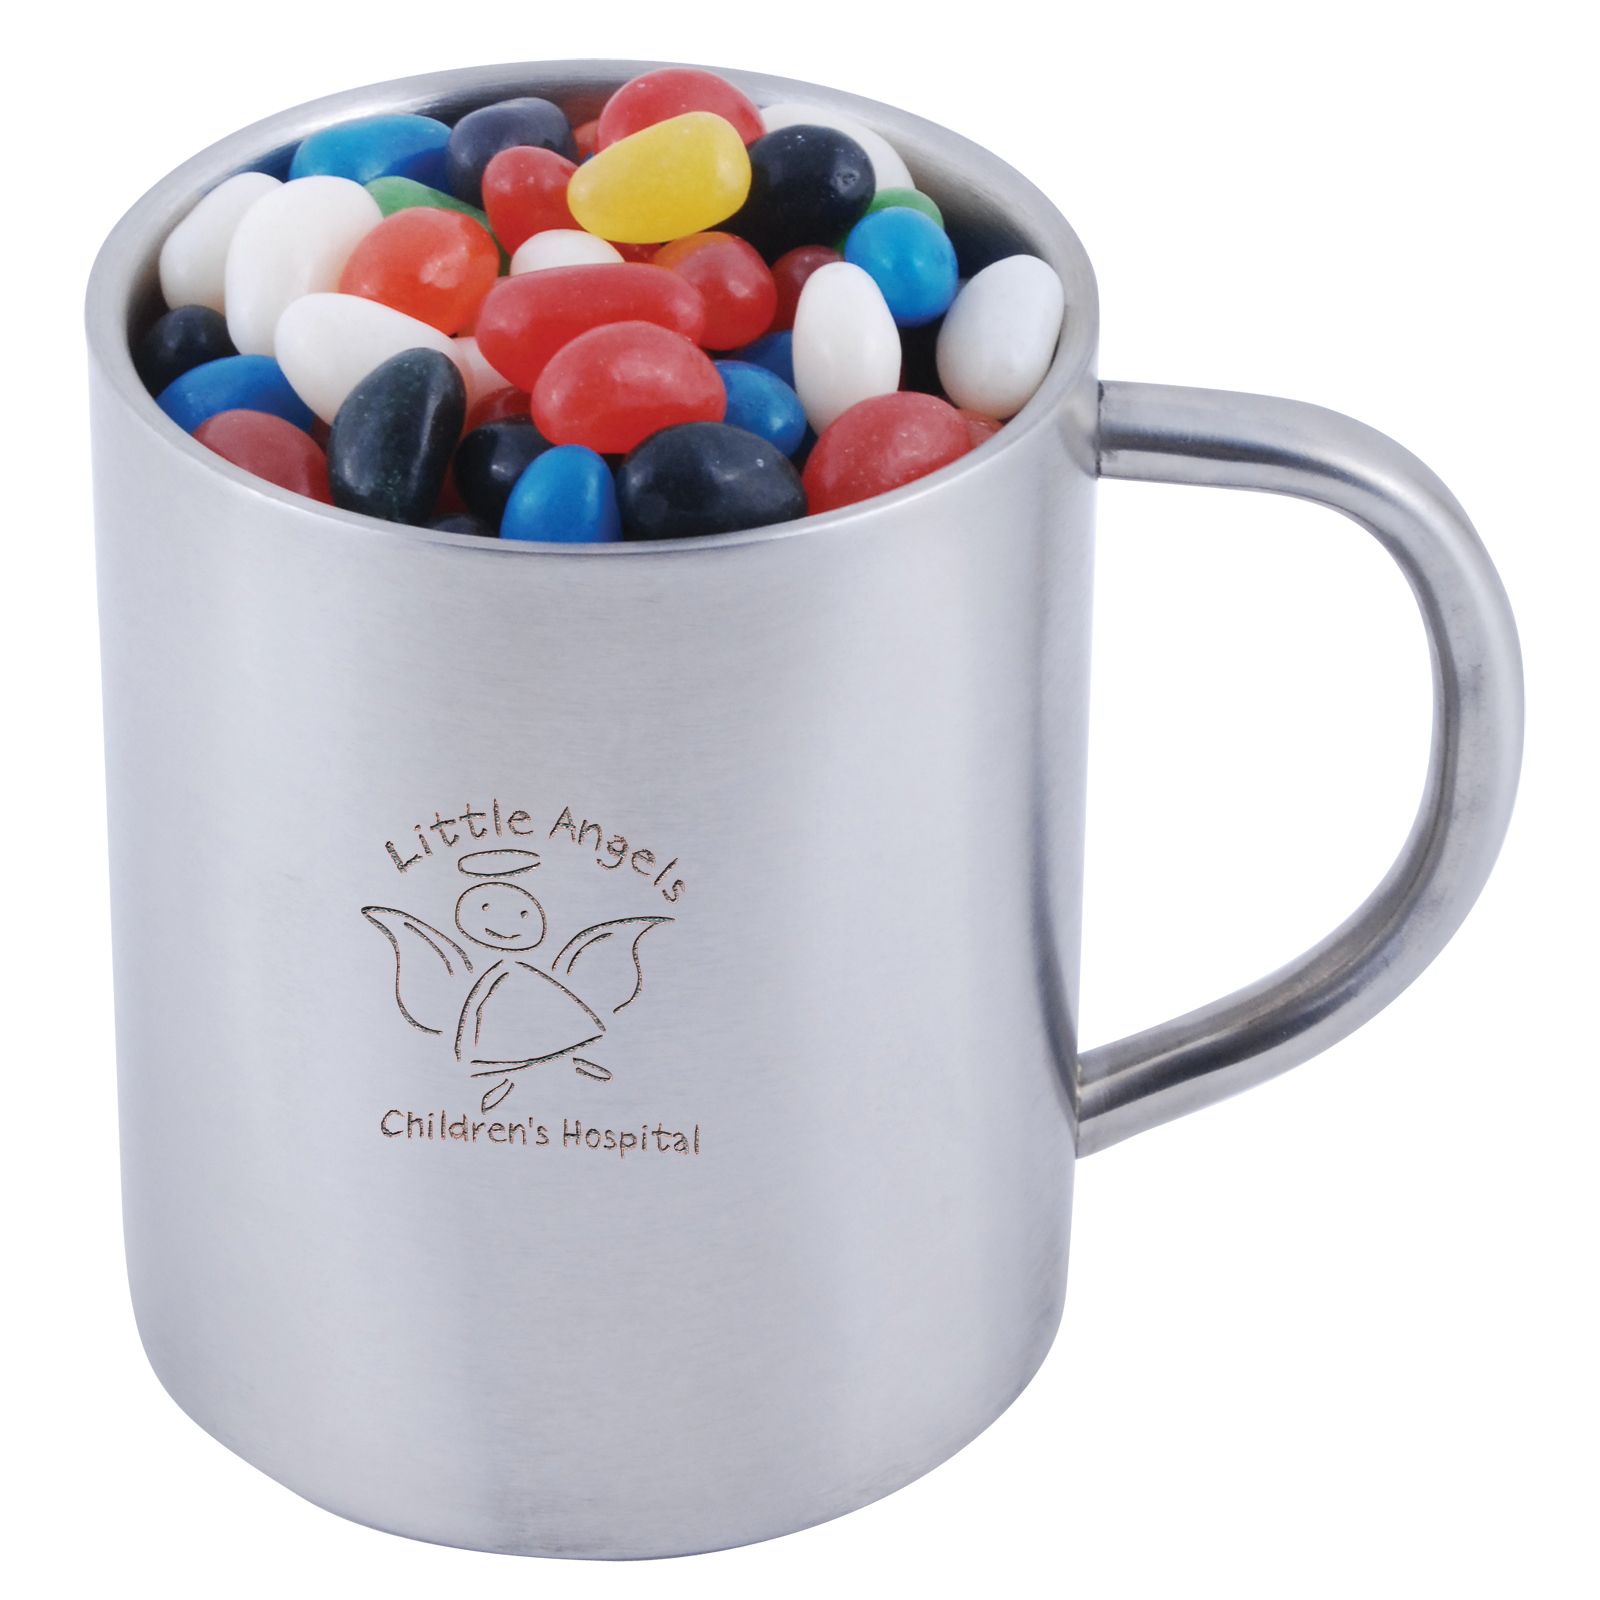 Assorted Colour Mini Jelly Beans in Java Mug - 1 Pos Laser Engraved